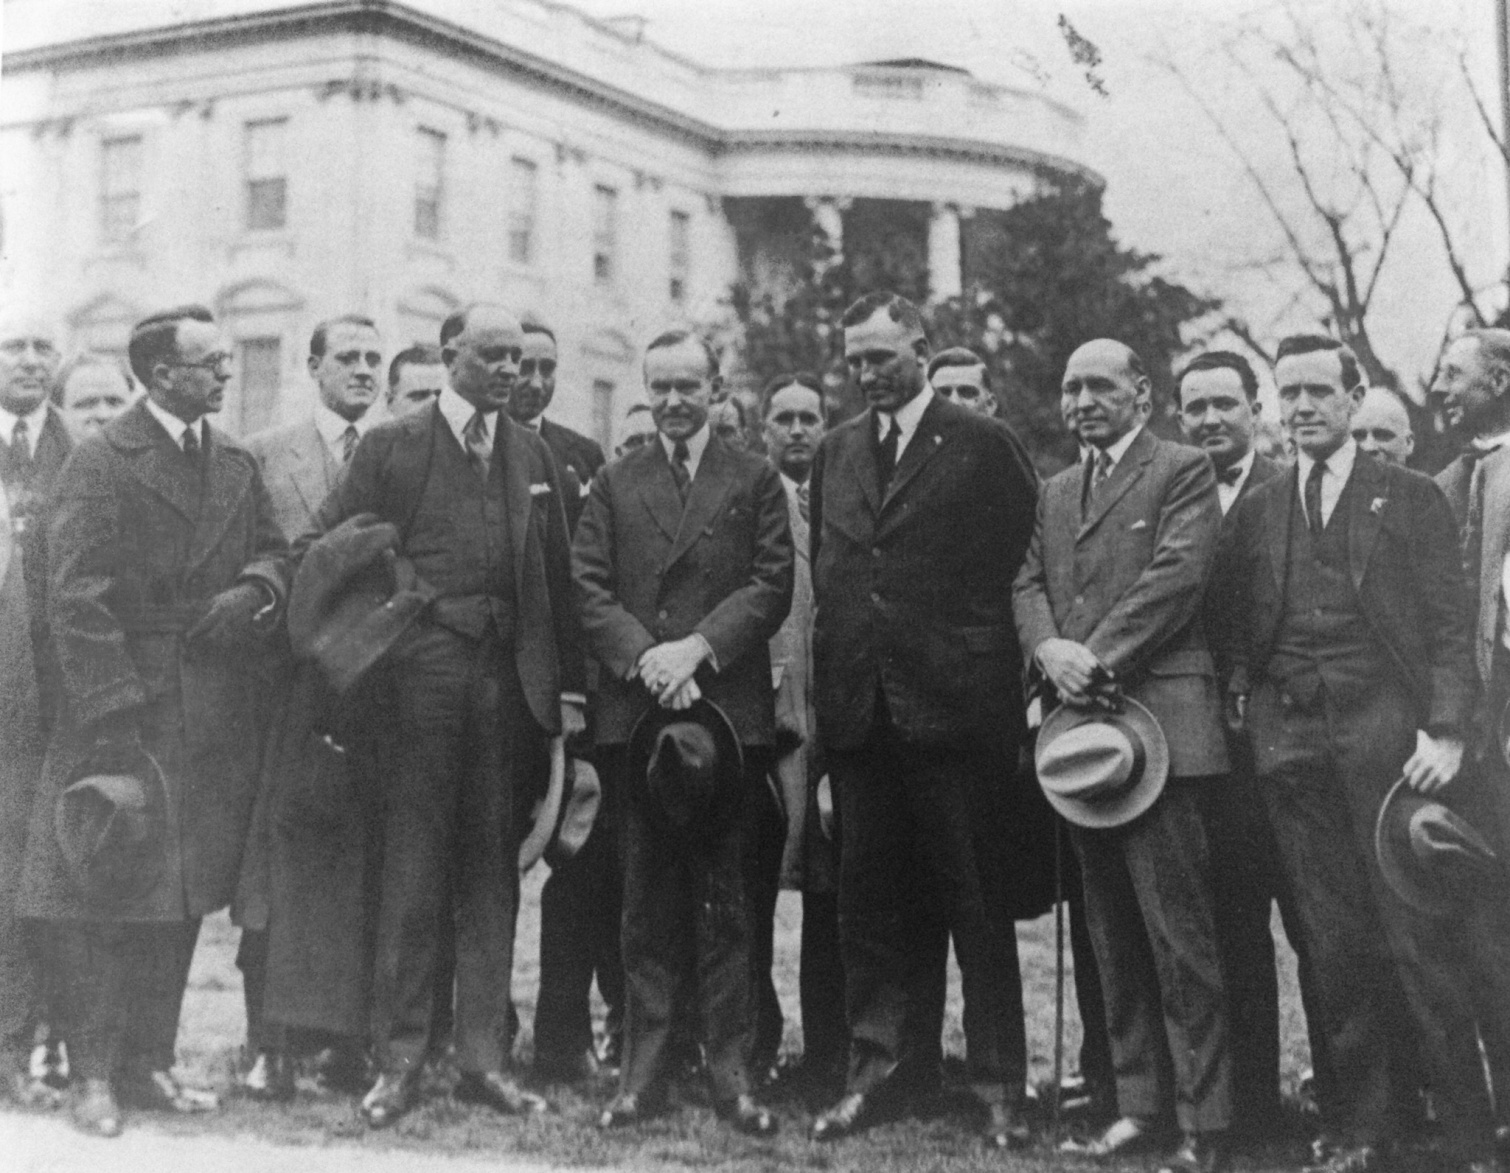 """President Coolidge surrounded by members of the American Legion, led by John Quinn, pressuring for the Veterans' Bonus Bill, what would become the World War Adjusted Compensation Act passed by Congress over the President's veto, May 1924. Coolidge firmly disagreed with direct compensation levied upon the rest of the people. As he declared, """"patriotism...bought and paid for is not patriotism."""""""